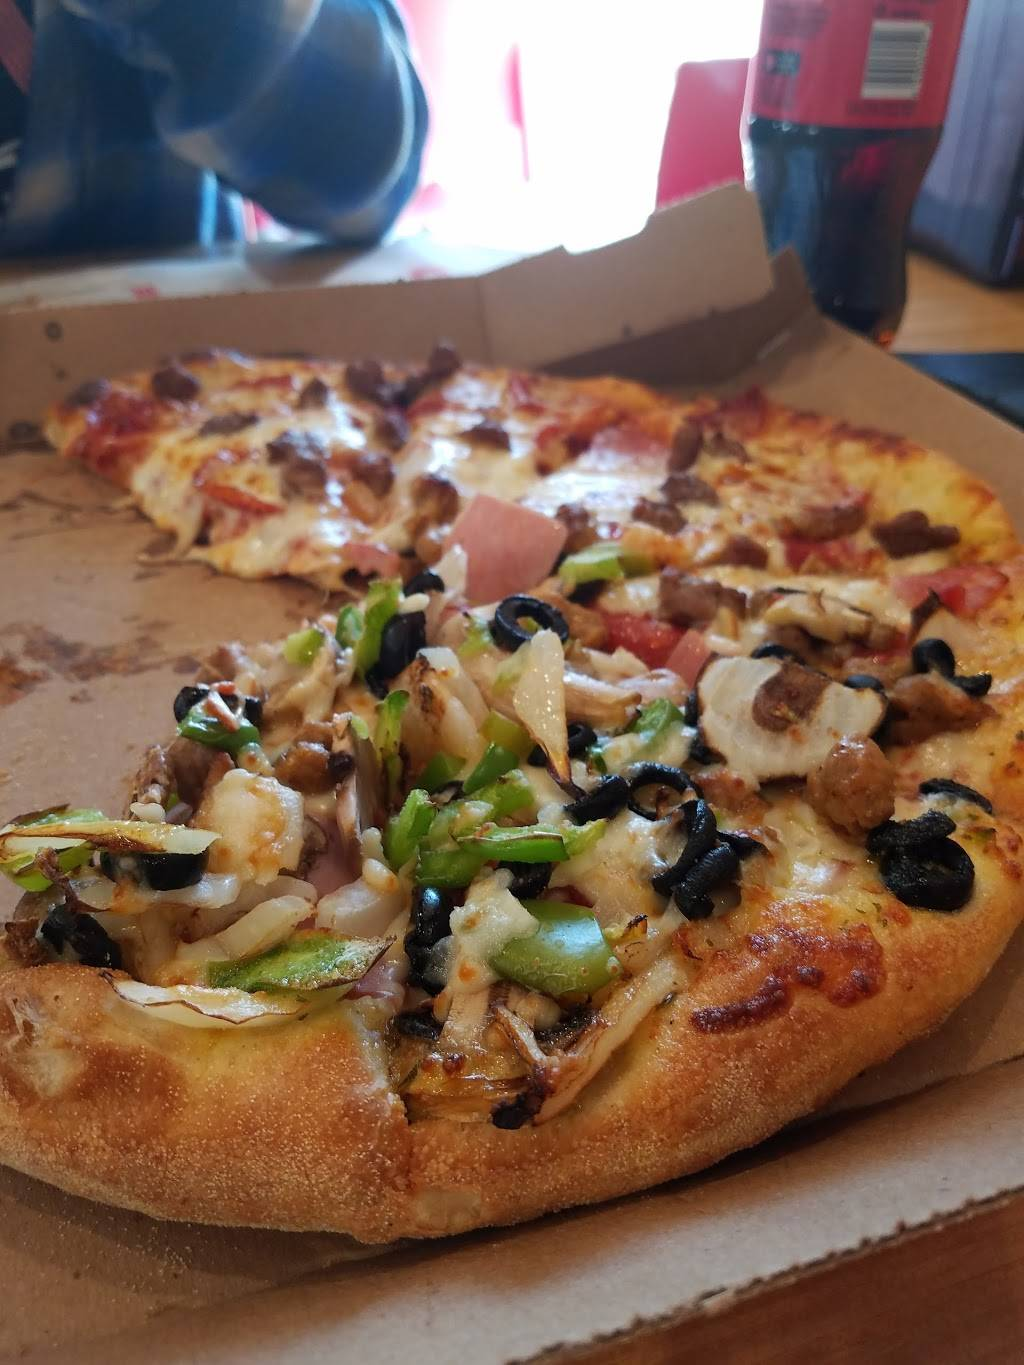 Dominos Pizza   meal delivery   4257 W 3rd St, Los Angeles, CA 90020, USA   2133853888 OR +1 213-385-3888